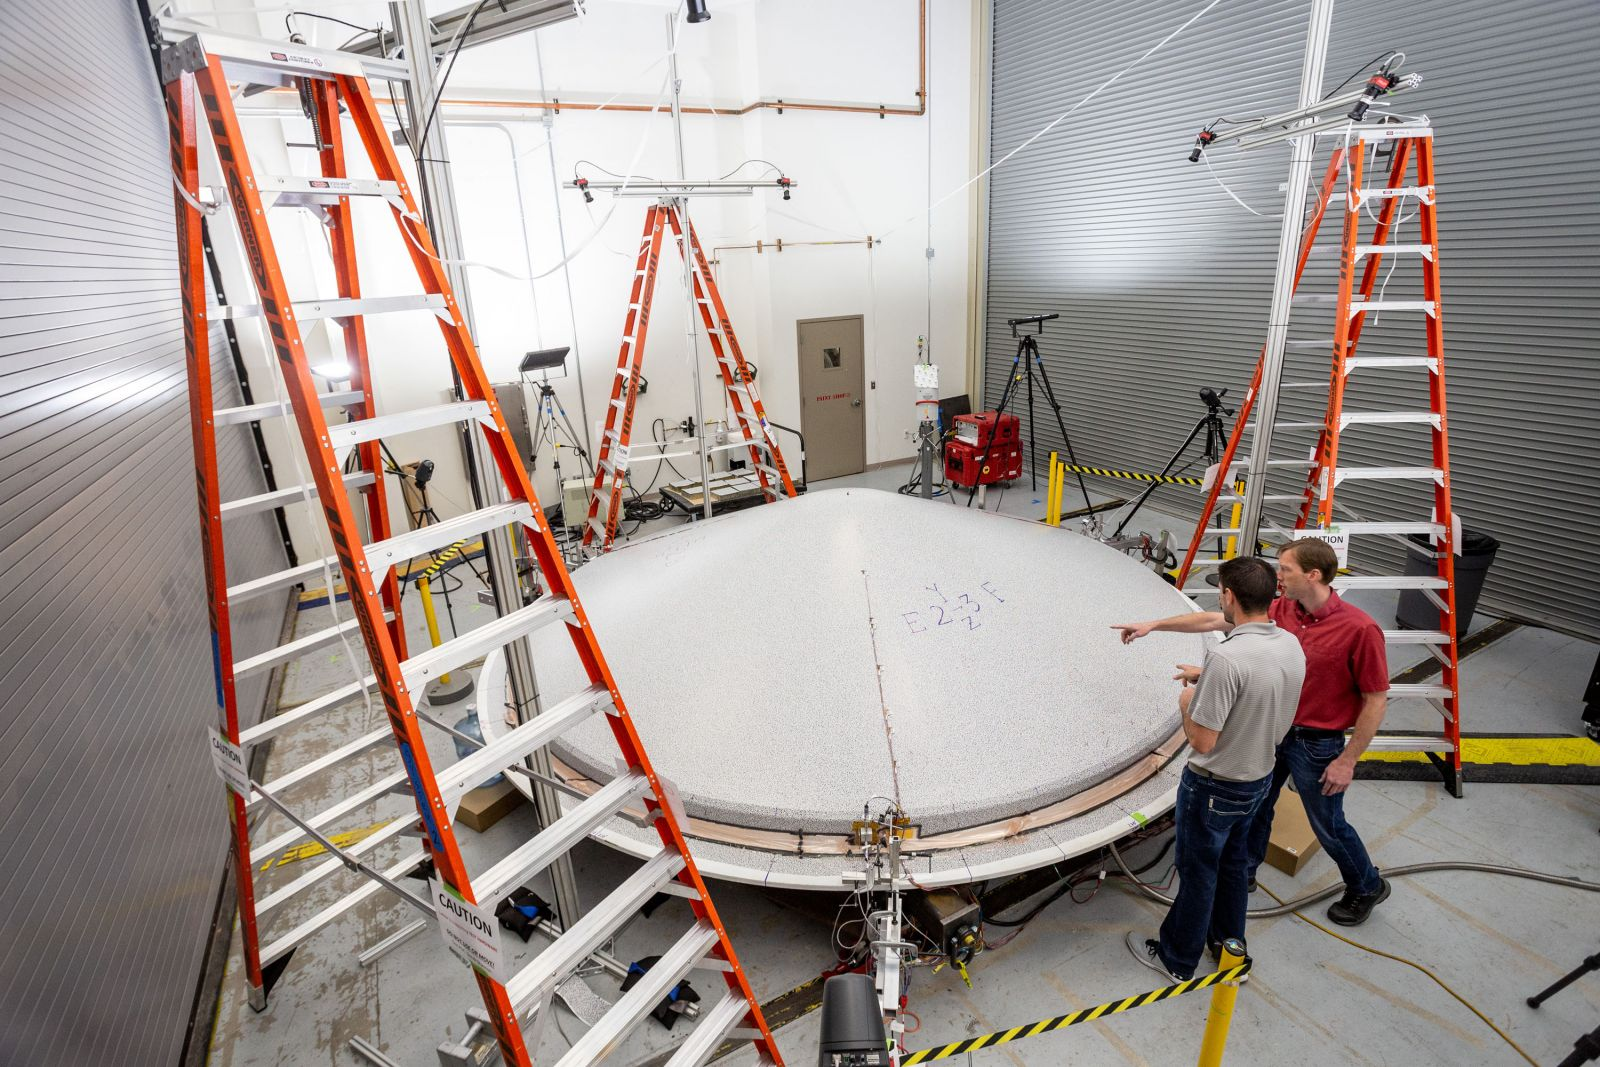 Technicians prepare the aeroshell for a planned July 2020 launch date. Photo Credit: Lockheed Martin